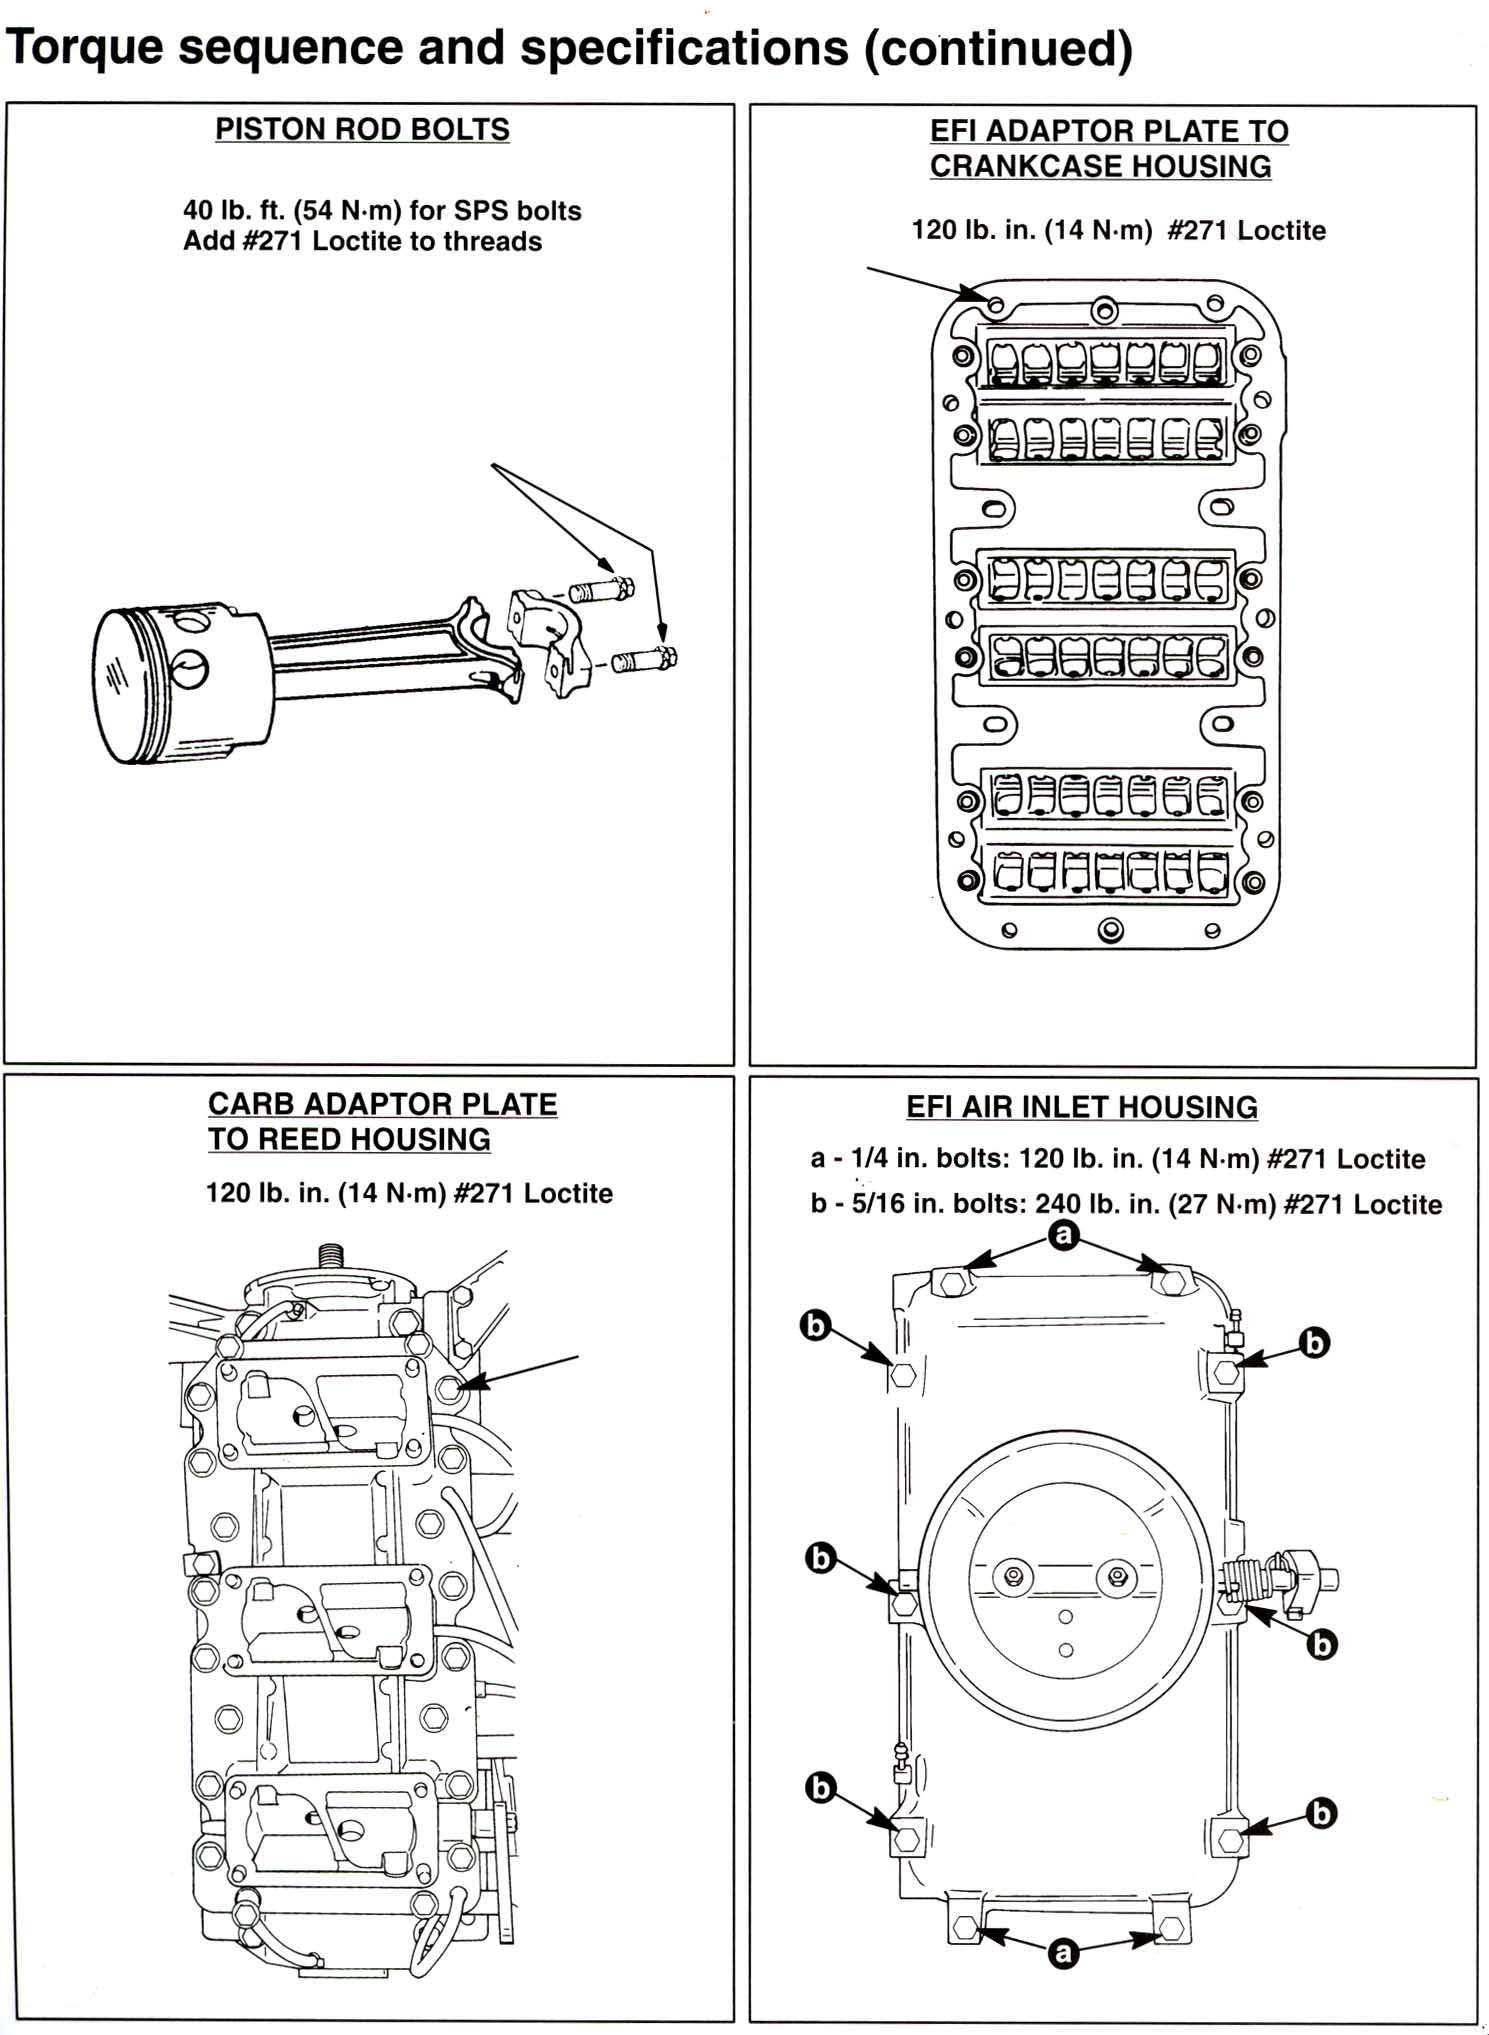 Wiring Diagram Mercruiser Boat Wiring Diagrams Boat Wiring Diagram on mercruiser 350 wiring diagram, mercruiser 5.7 engine diagram, mercruiser wiring schematic, mercruiser starter wiring, mercruiser trim pump wiring, mercruiser 3.0 parts diagram, 4.3 mercruiser parts diagram, mercruiser 3 0 wiring, mercruiser outdrive wiring diagram, mercruiser 3 0lx block diagram, mercruiser 470 wiring diagram, mercruiser shift interrupter switch wiring, mercruiser 3.0 firing order diagram, mercruiser engine wiring diagram, mercruiser boat wiring, mercruiser trim wiring diagram, mercruiser 5.7 wiring-diagram, mercruiser electrical system wiring diagrams, mercruiser one wire alternator wiring, mercruiser diesel wiring diagram,